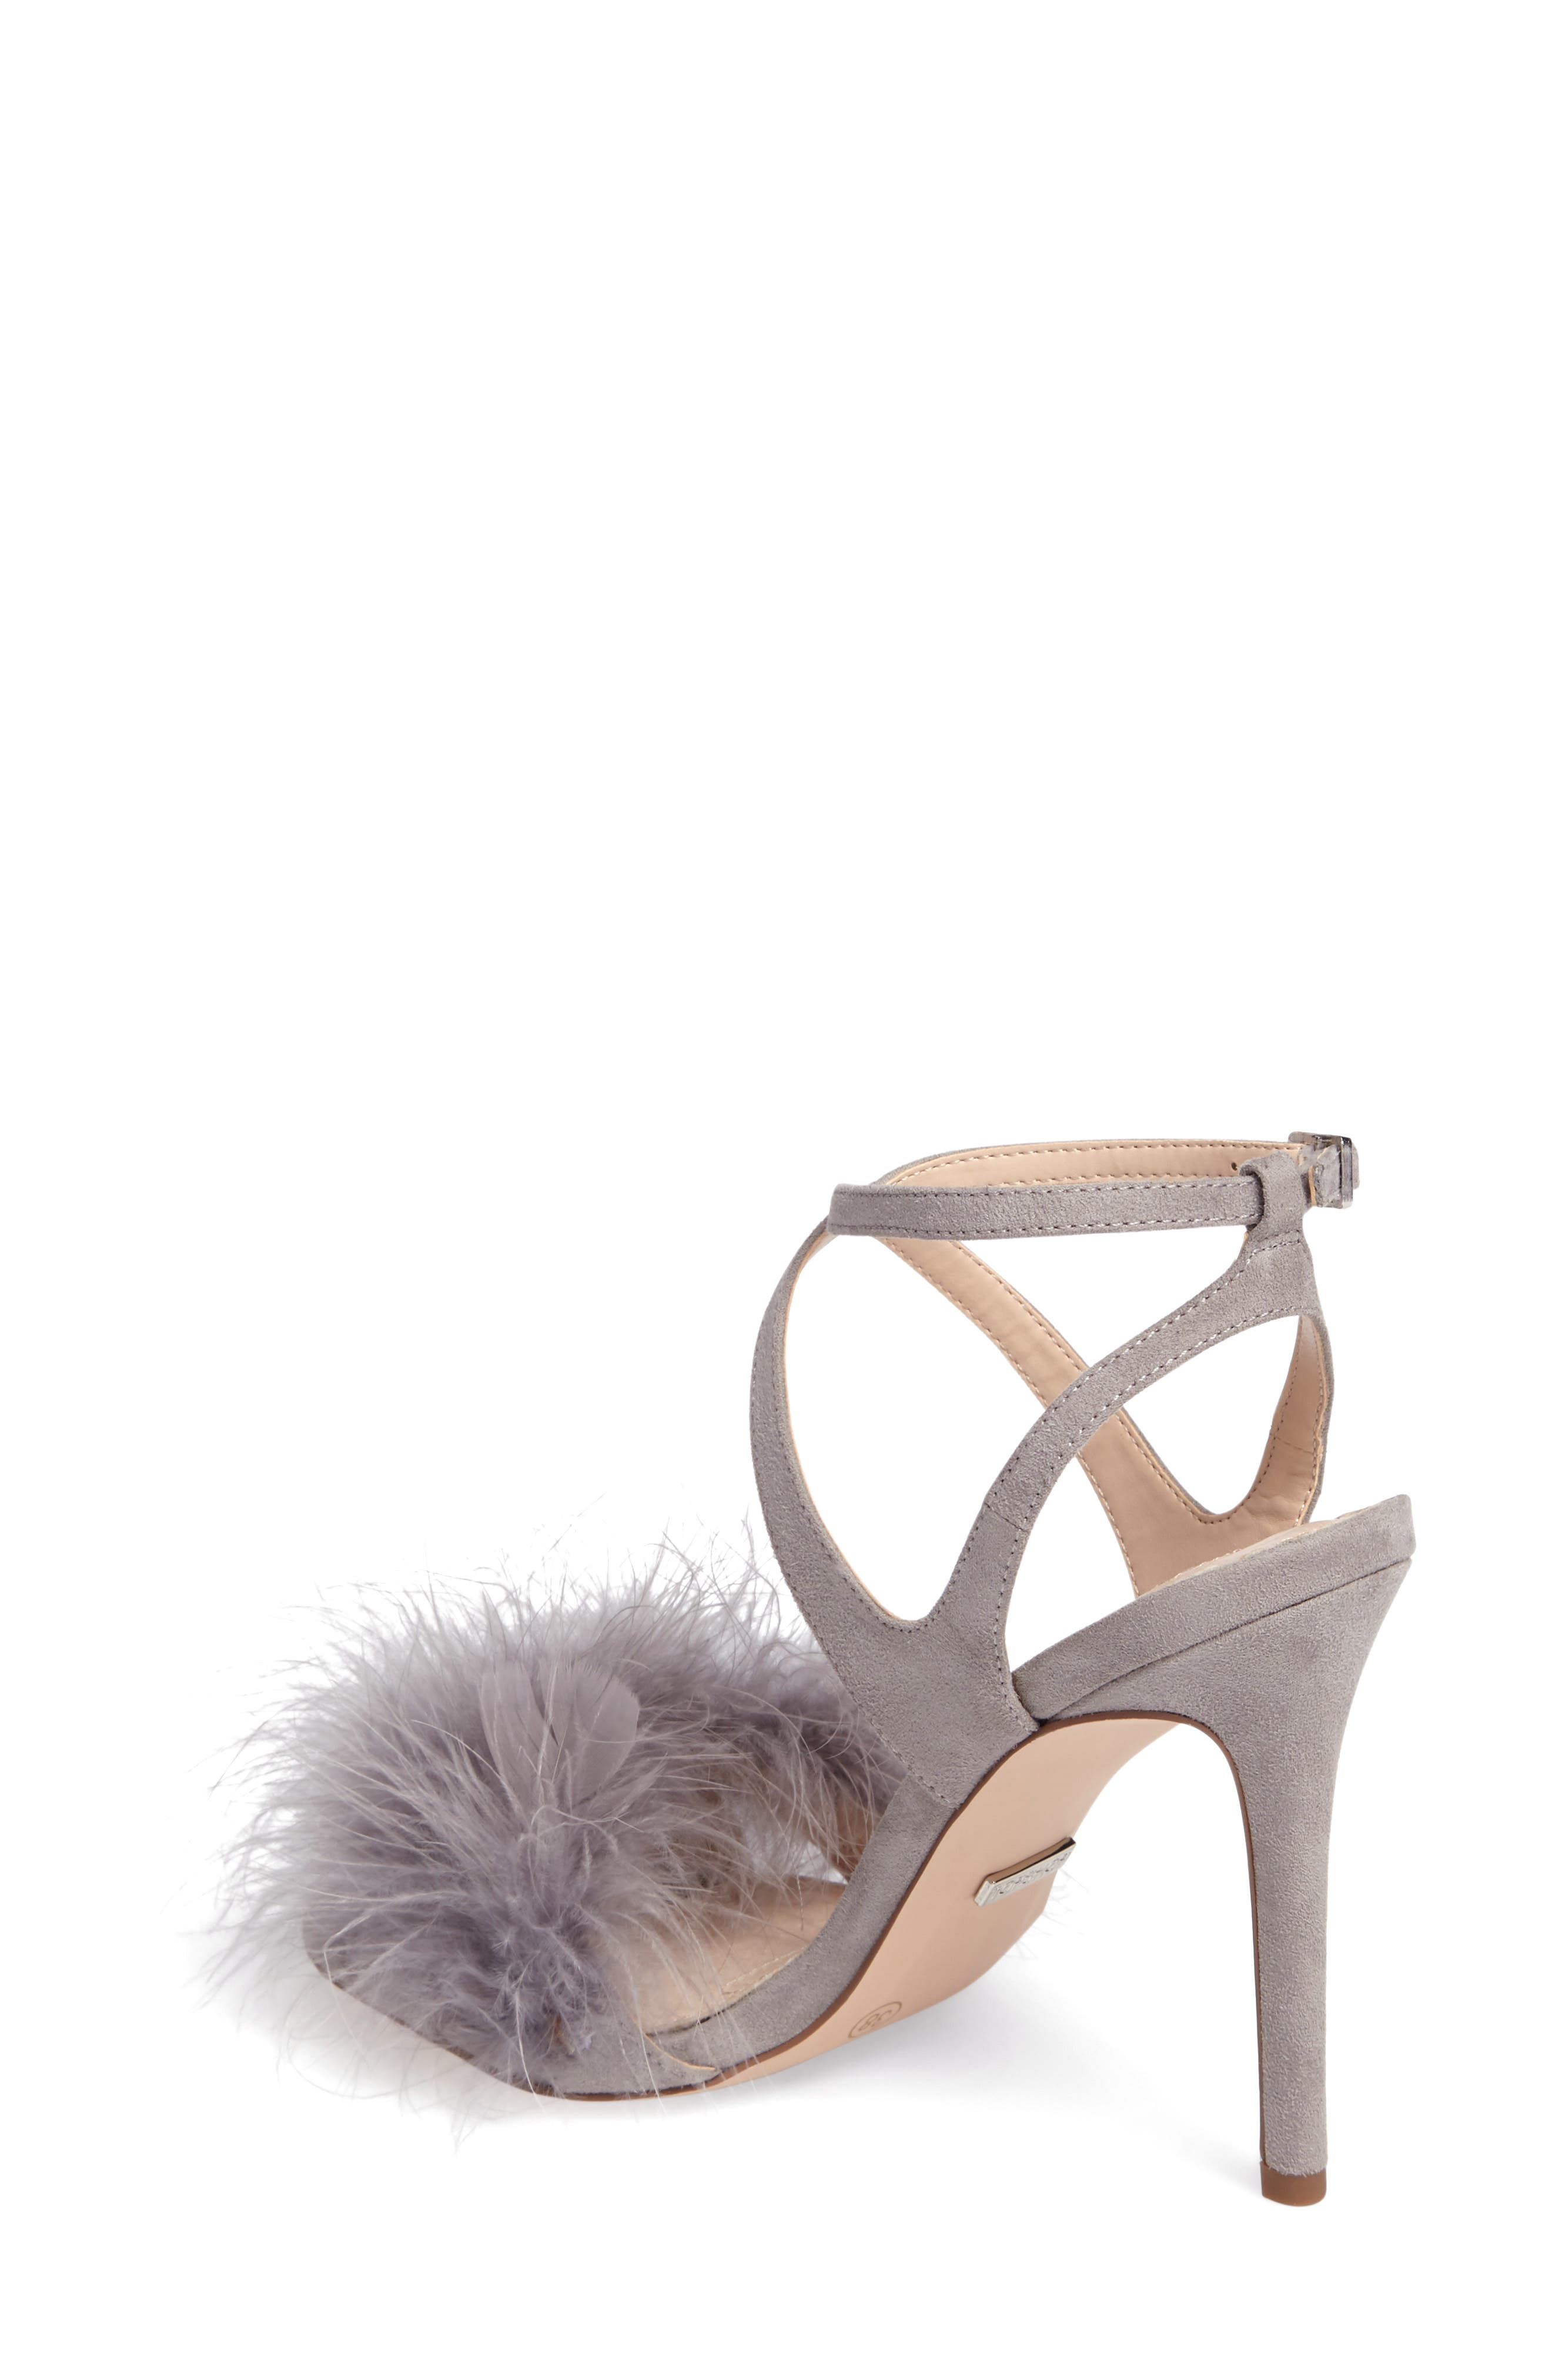 Reine Feathered Sandal,                             Alternate thumbnail 2, color,                             020